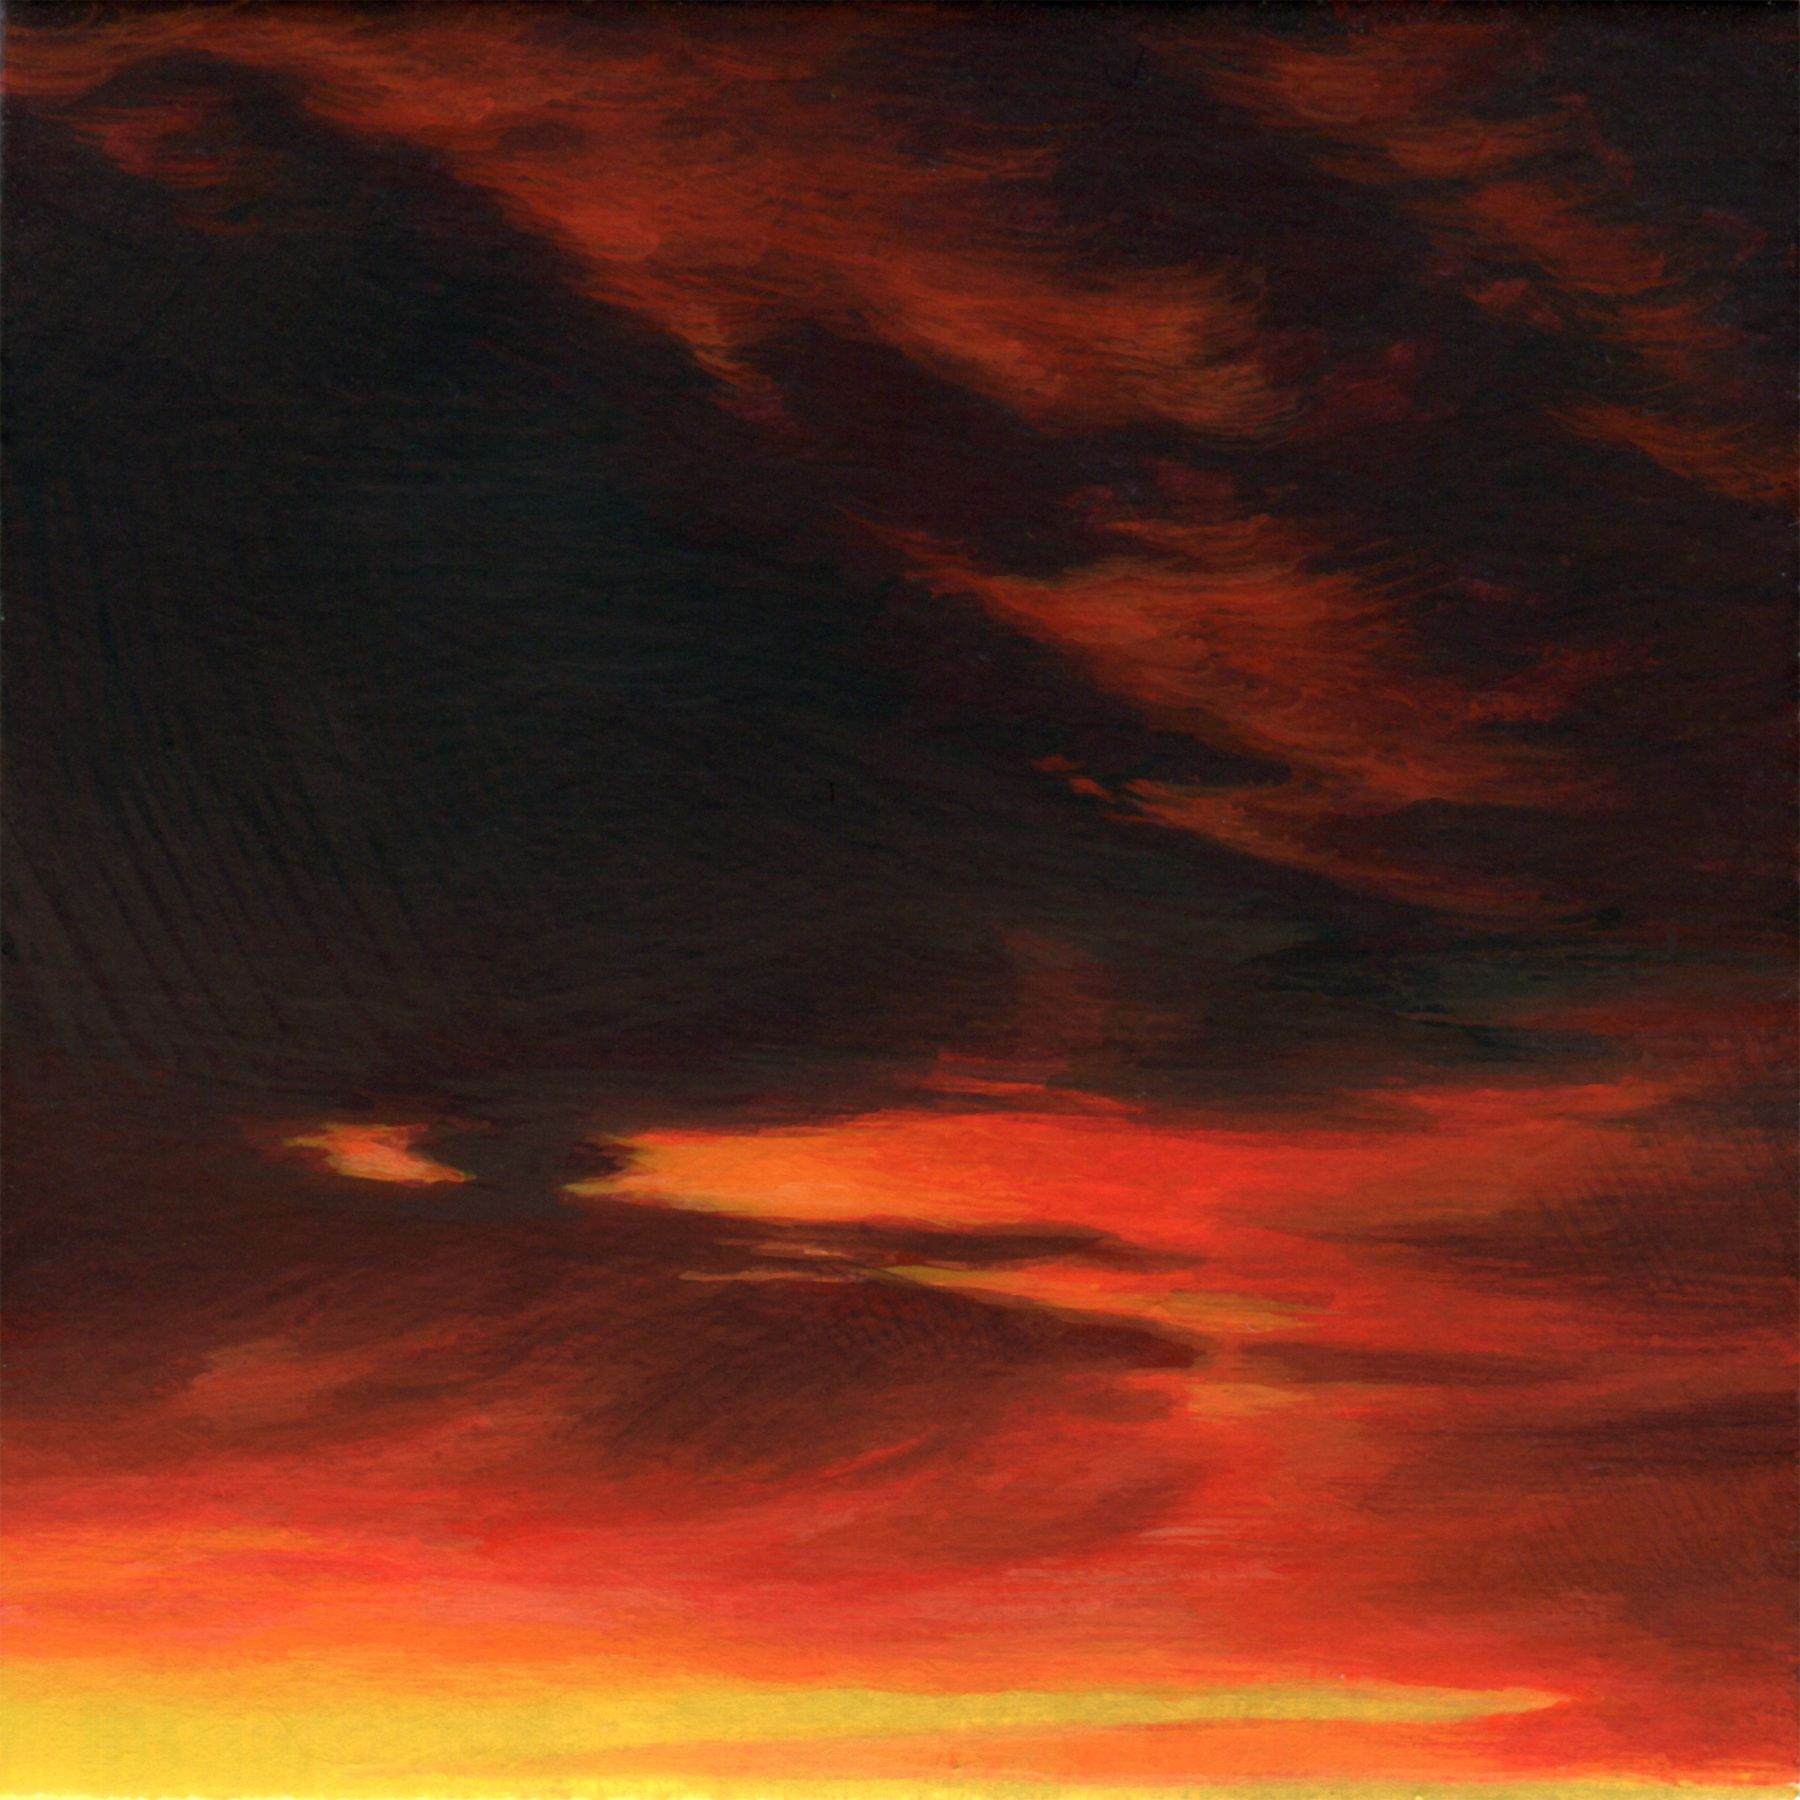 ADAM MYSOCK Red Sky in the Morning[Day Four], 2017